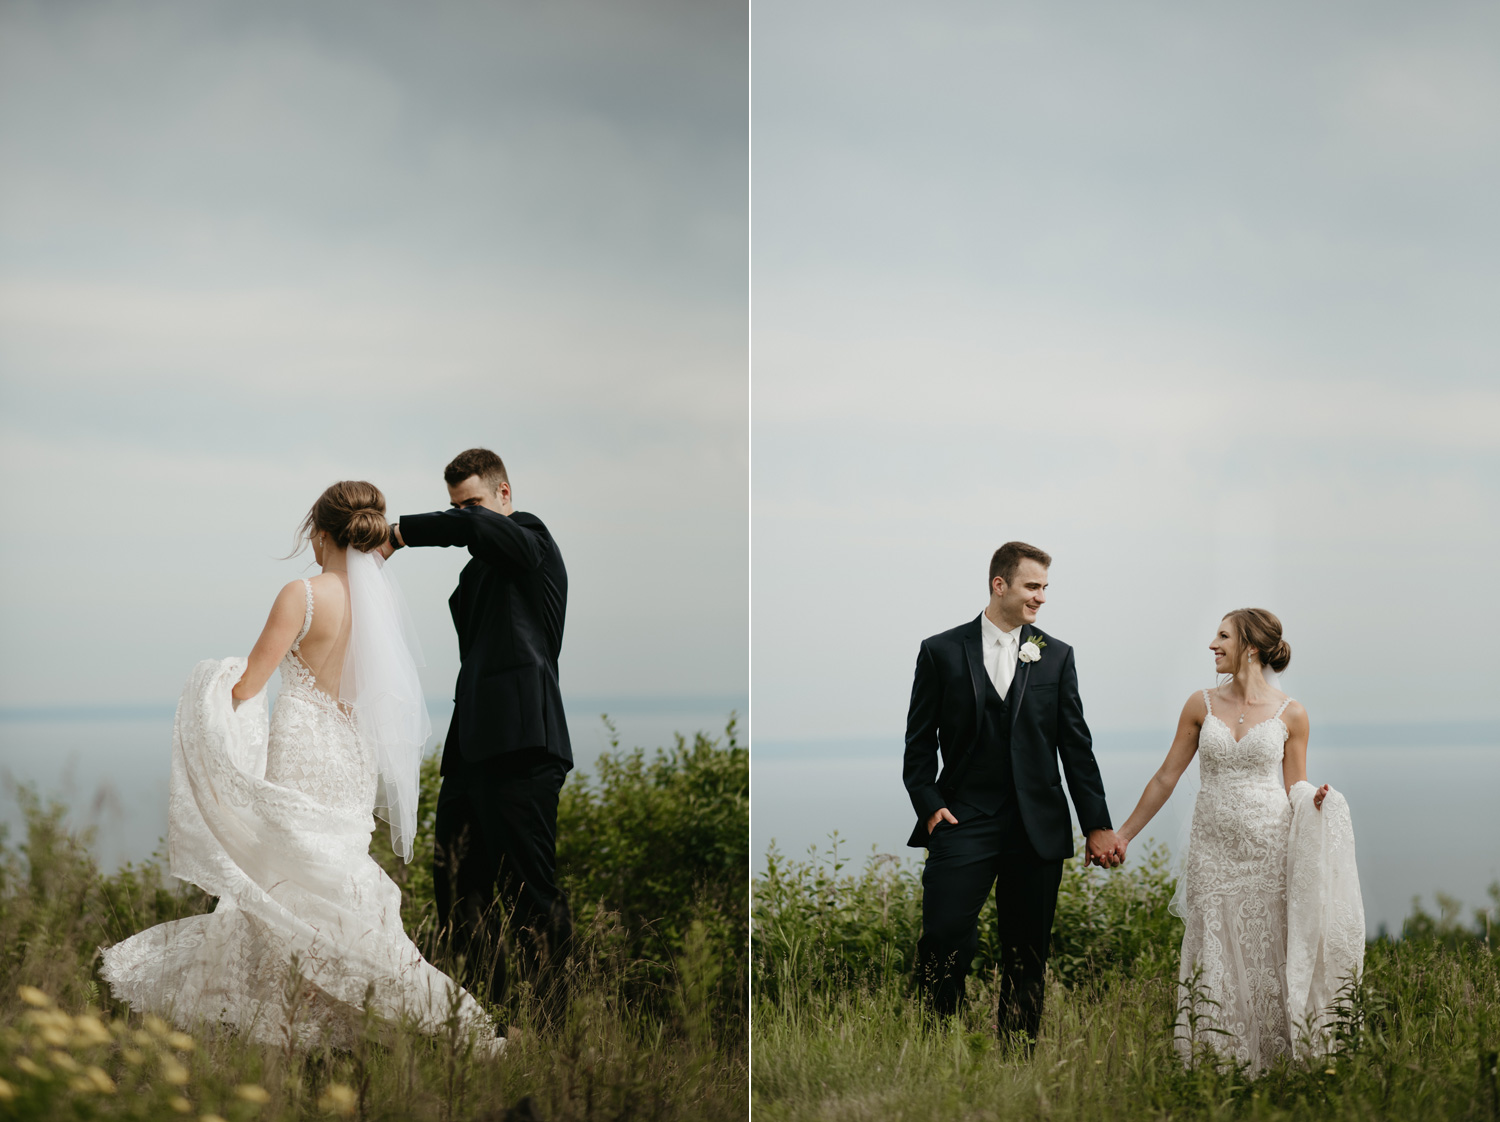 Bride and groom standing in a field overlooking the lake